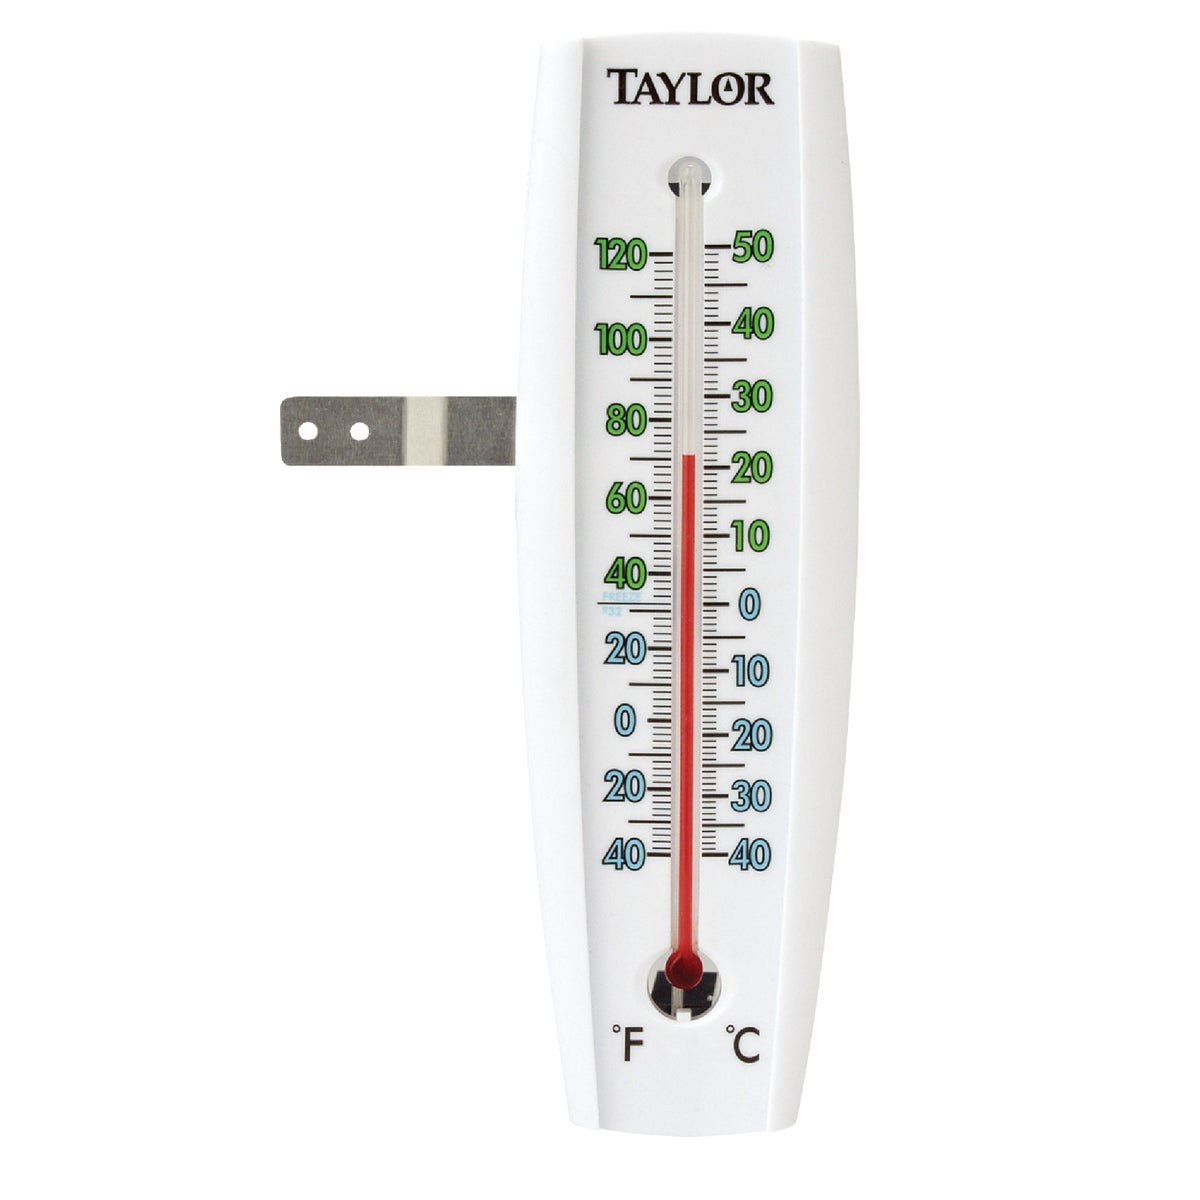 WINDOW THERMOMETER - 5153 by Taylor Precision